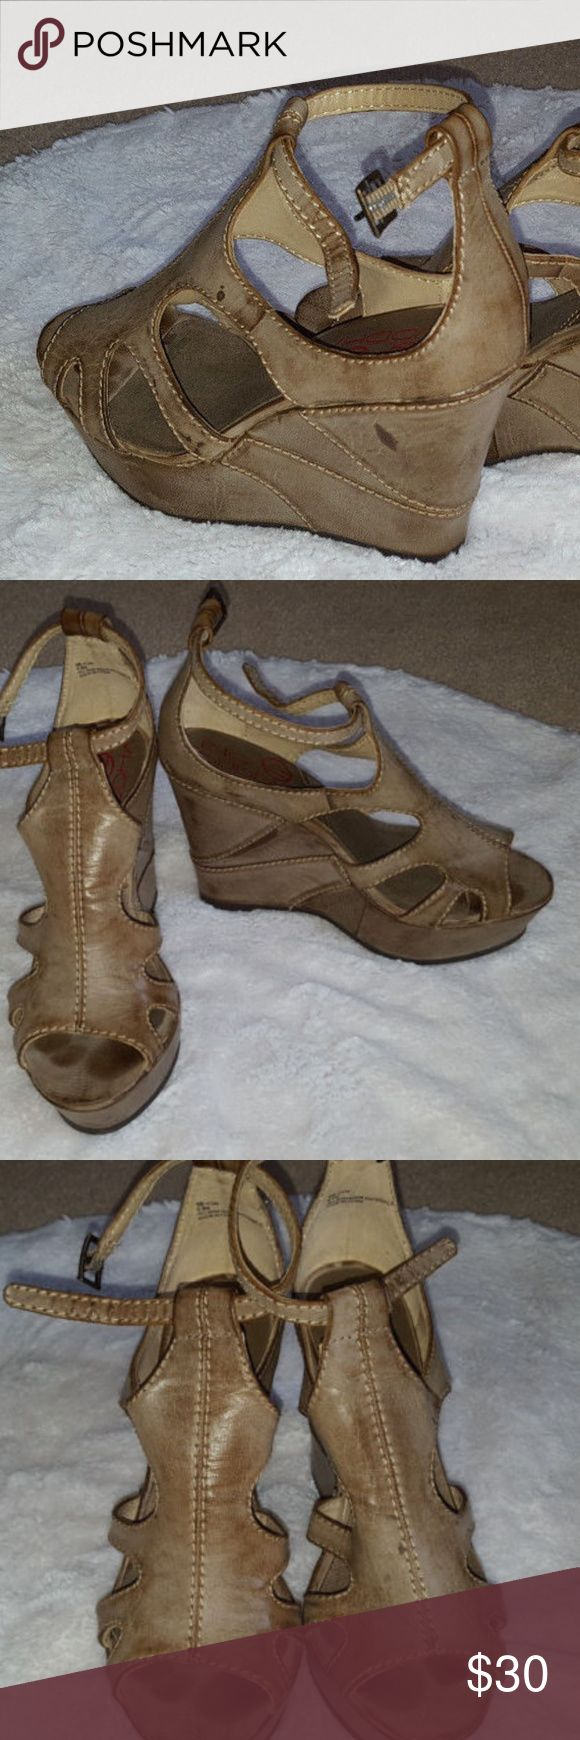 "Big Buddha bb-fun cutout platform wedge tan 6.5M BIG BUDDHA BB-Fun Cutout Platform Wedge Sandal Heel Tan Size 6.5M  Size 6.5M Good used condition, light wear on soles. Right shoe has purple spot on front of shoe near toe and back of buckle area some of the sewn thread has come out. Tan, exterior material is meant to look like distressed leather.  Heel Height 4"" Imported Ships from Smoke-Free Home  Thanks for stopping by! Big Buddha Shoes Wedges"